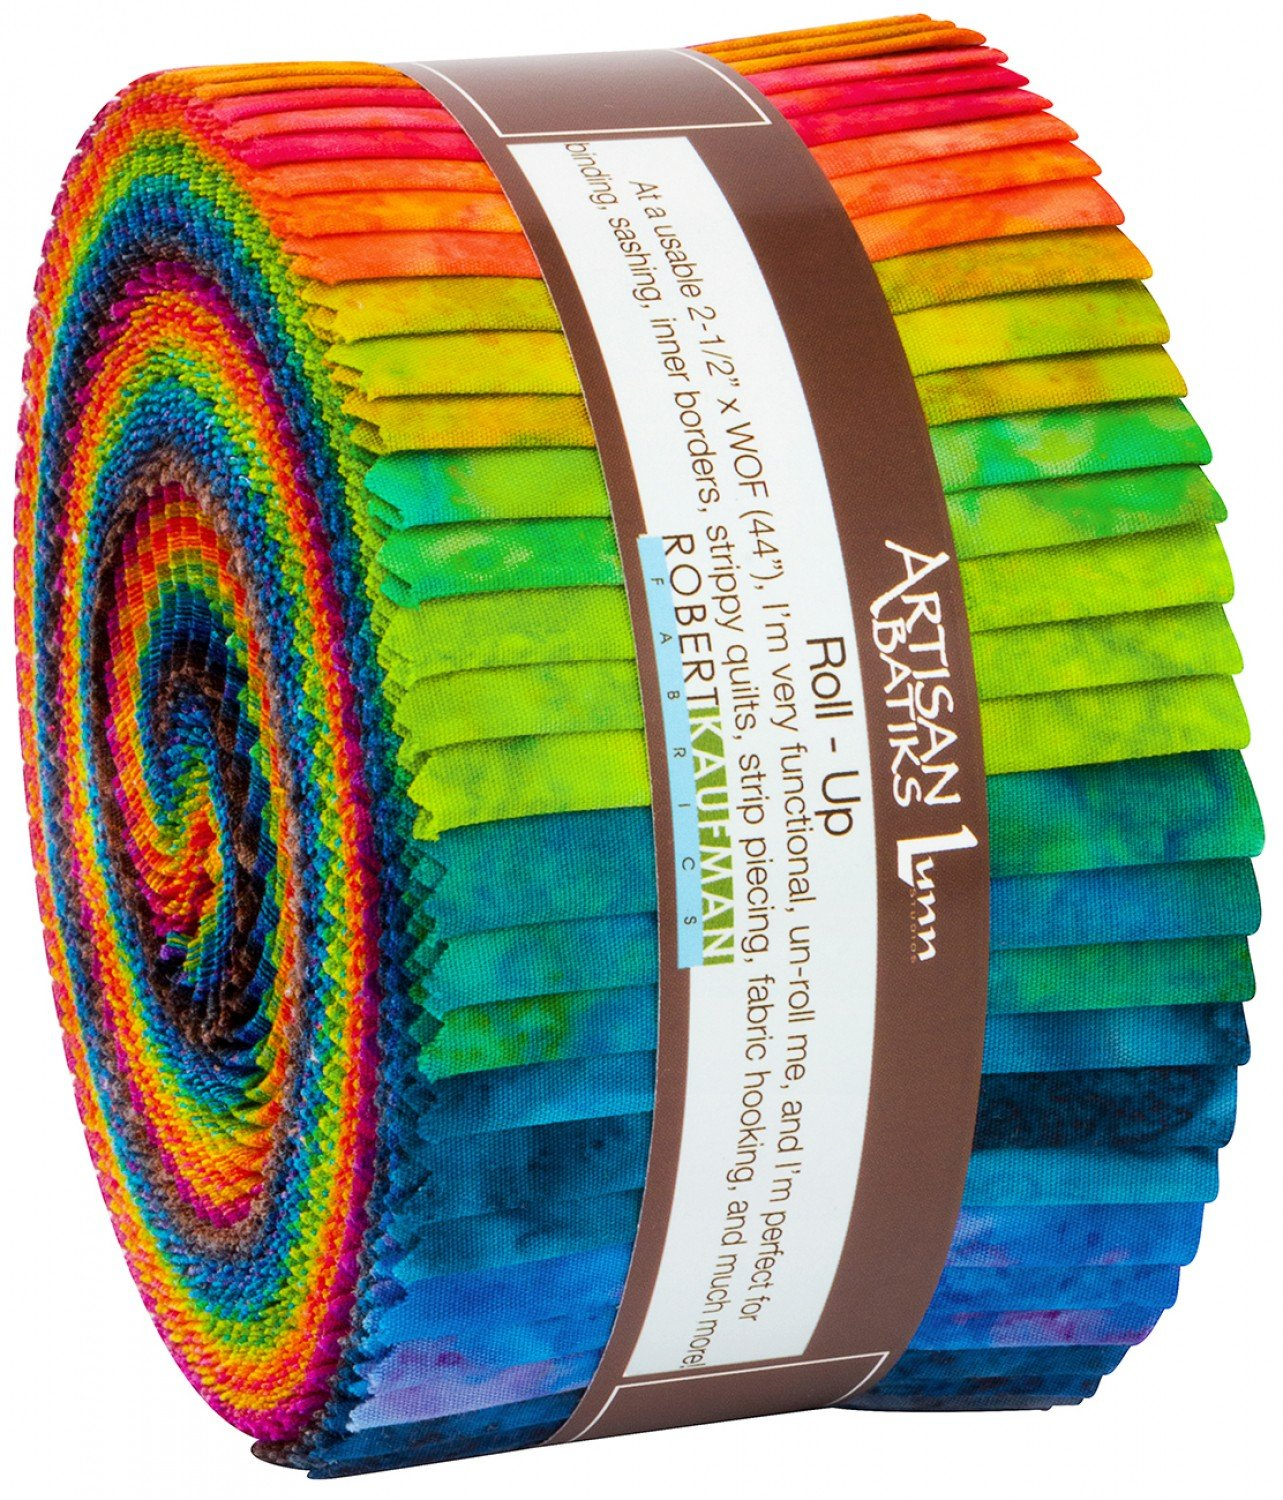 Patina Hand Paints Jelly Roll